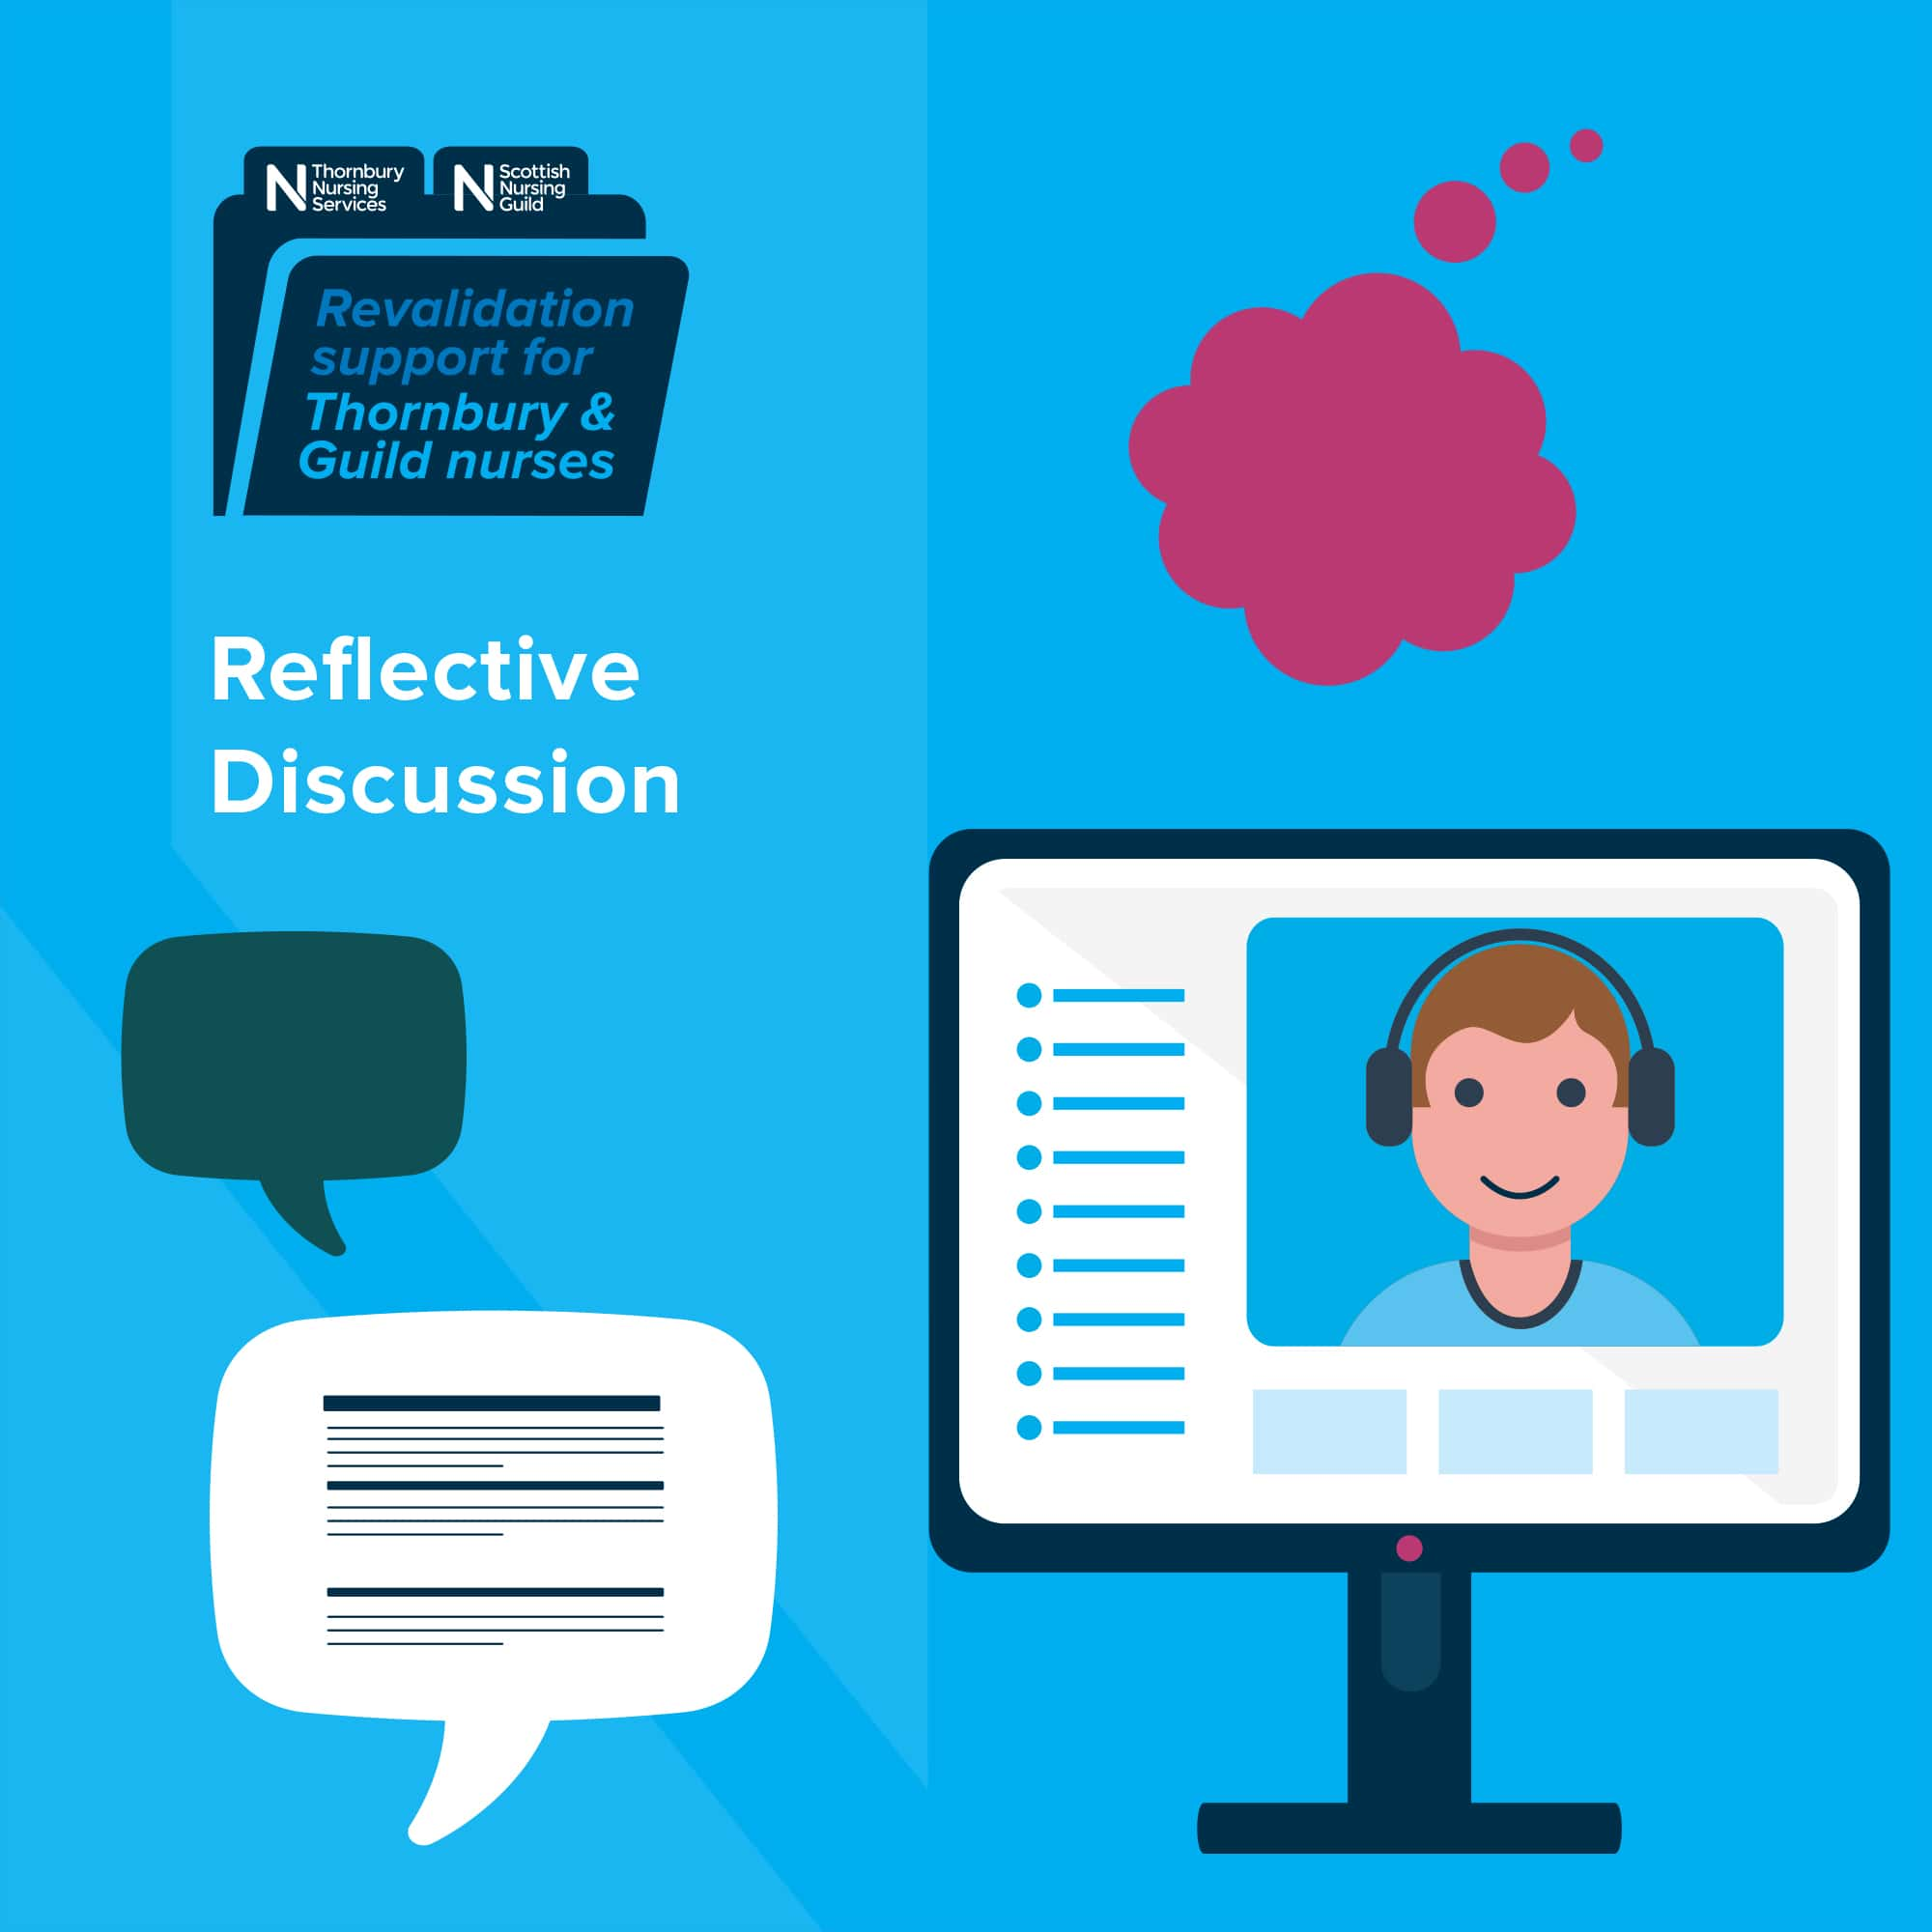 Reflective discussion - revalidation support